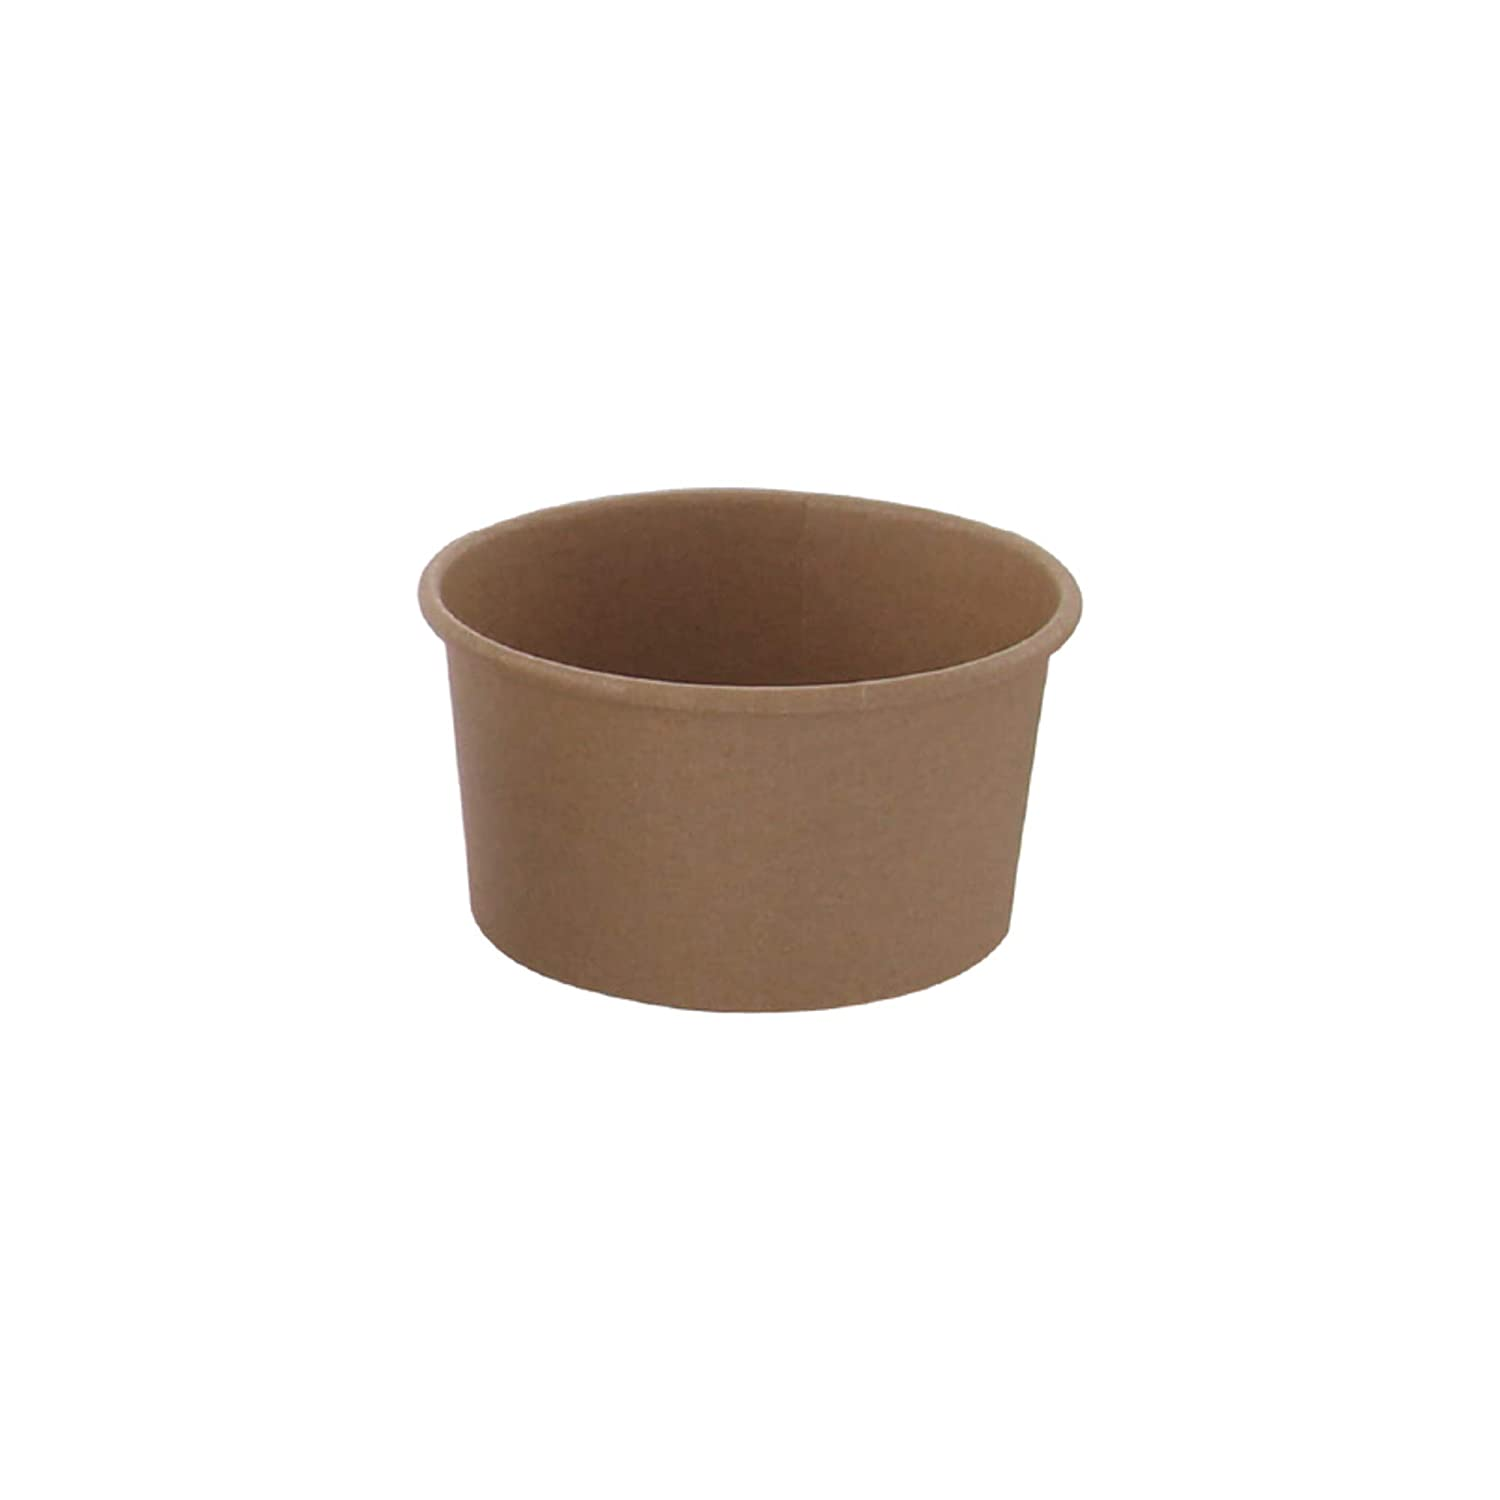 PacknWood Kraft Paper To-Go Bucket Container, 6.5 oz. Capacity, Brown (Case of 1000)